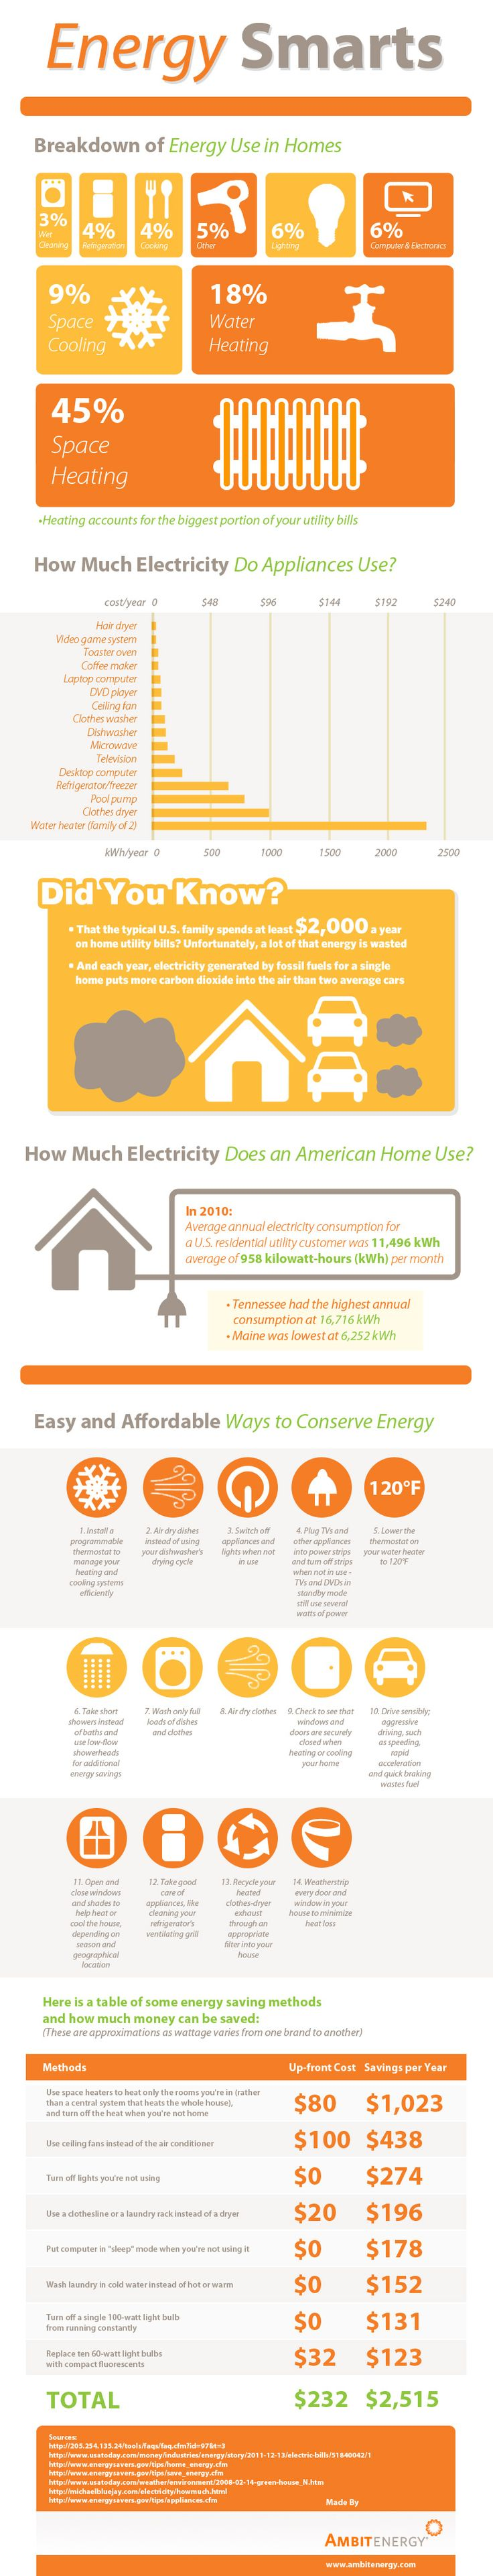 best images about energy conservation activities for kids on if you are from tn you need to save more energy and if you